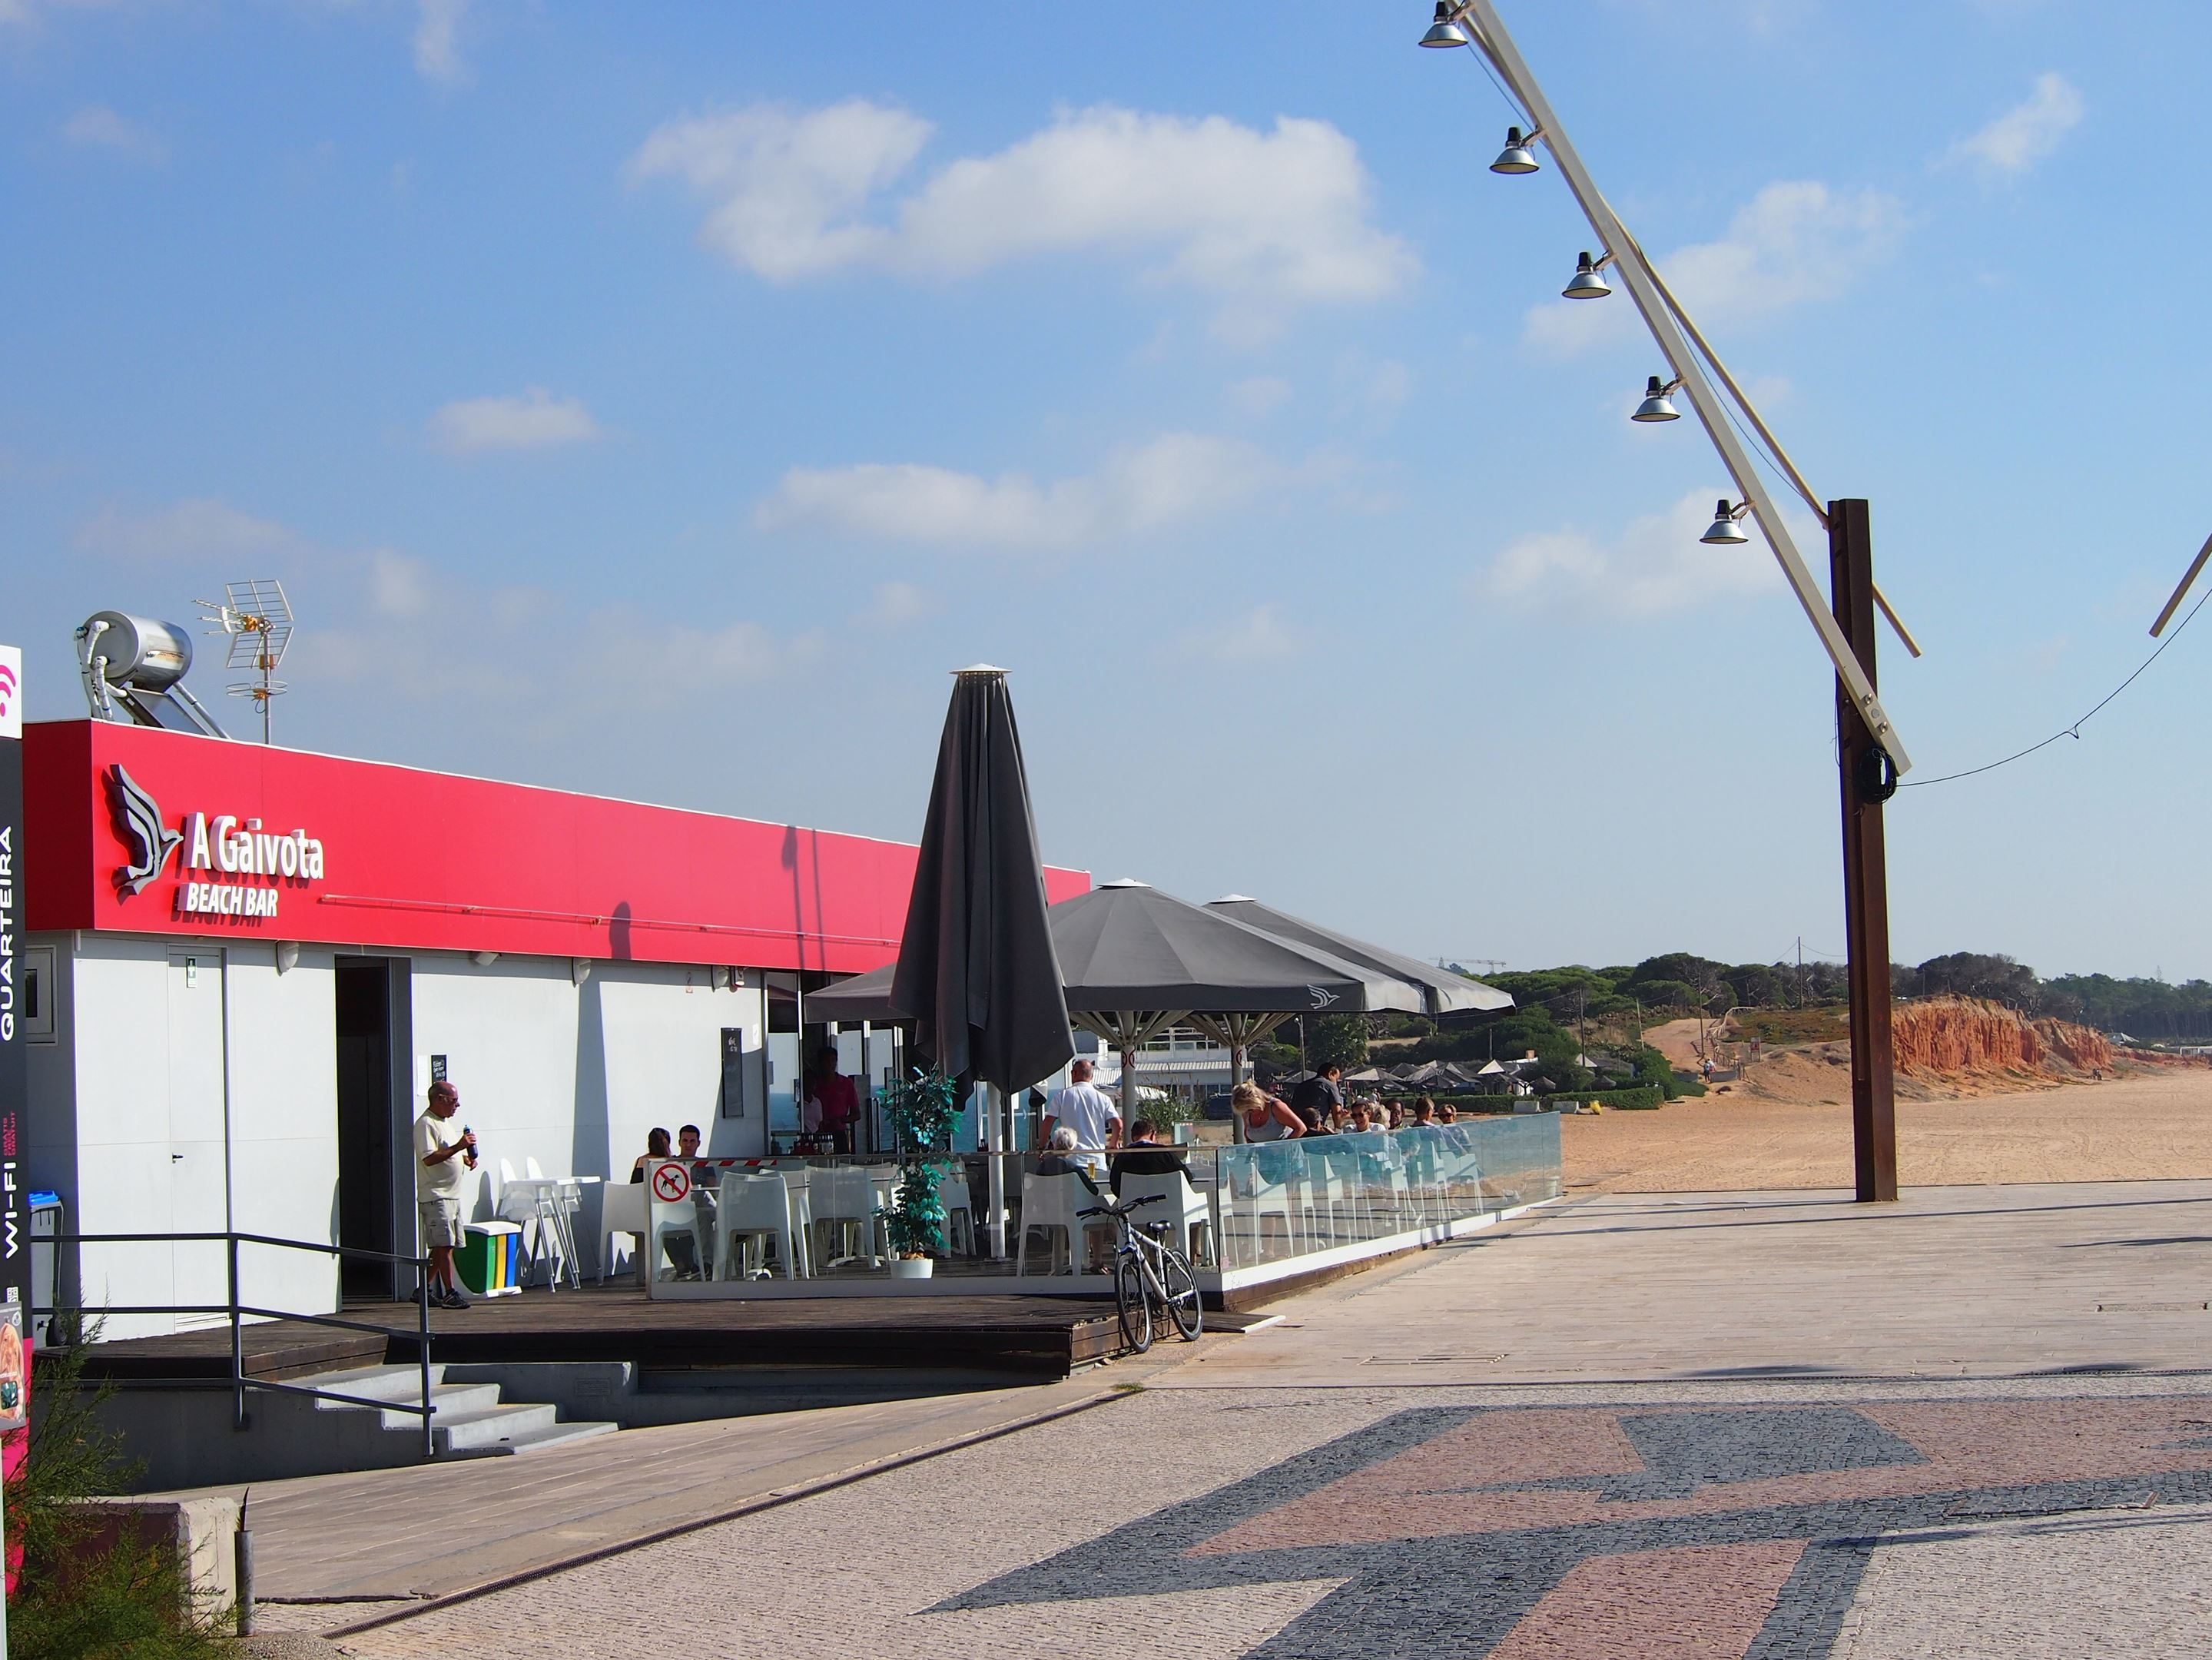 Gaivota Beach Bar, Quarteira, Algarve